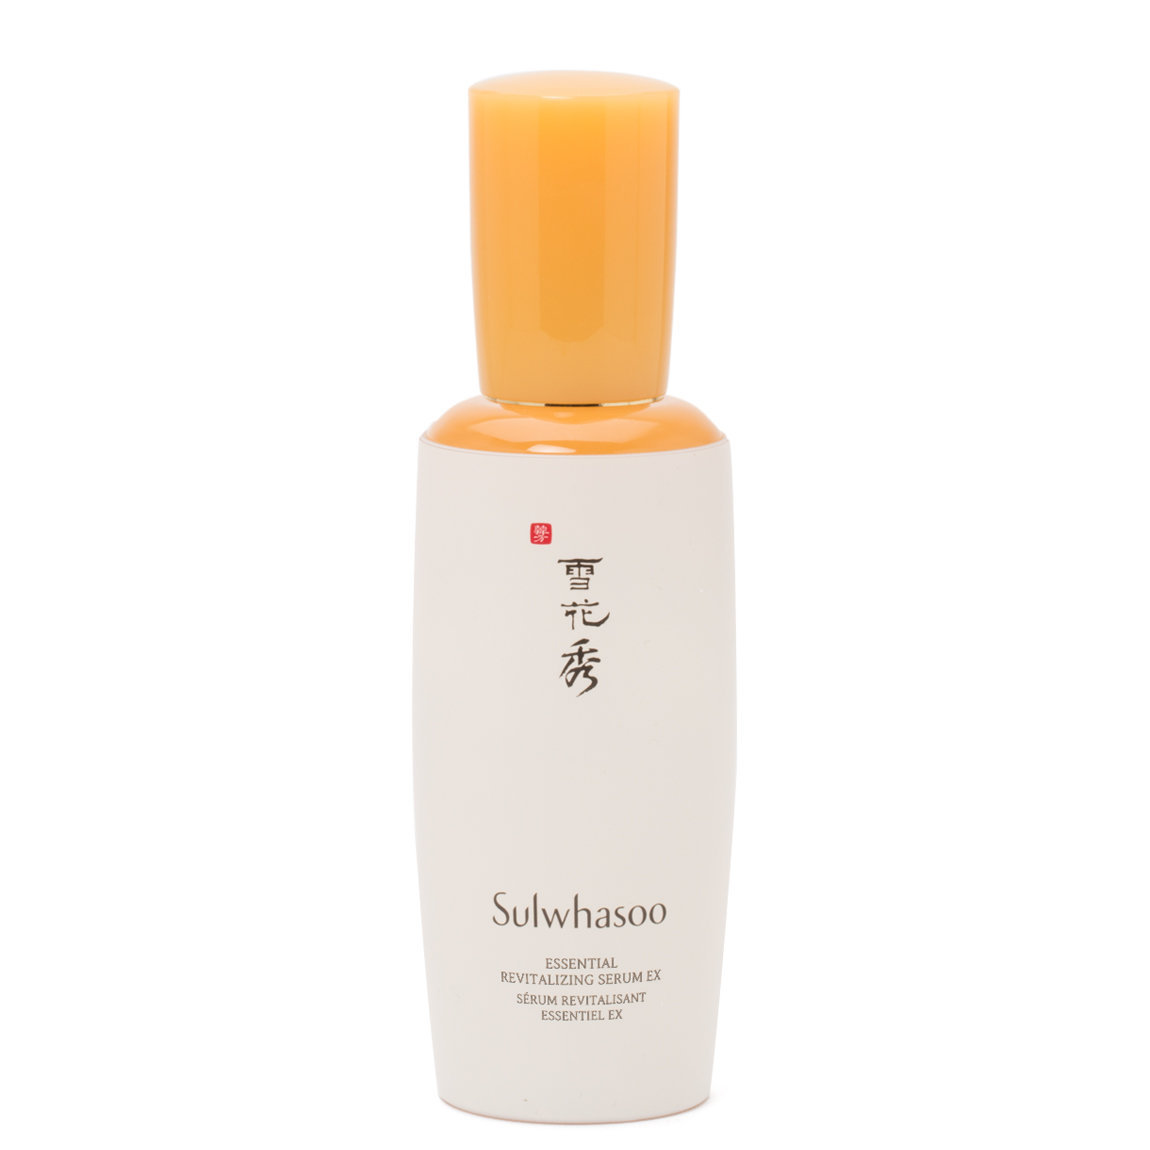 Sulwhasoo Essential Revitalizing Serum product swatch.